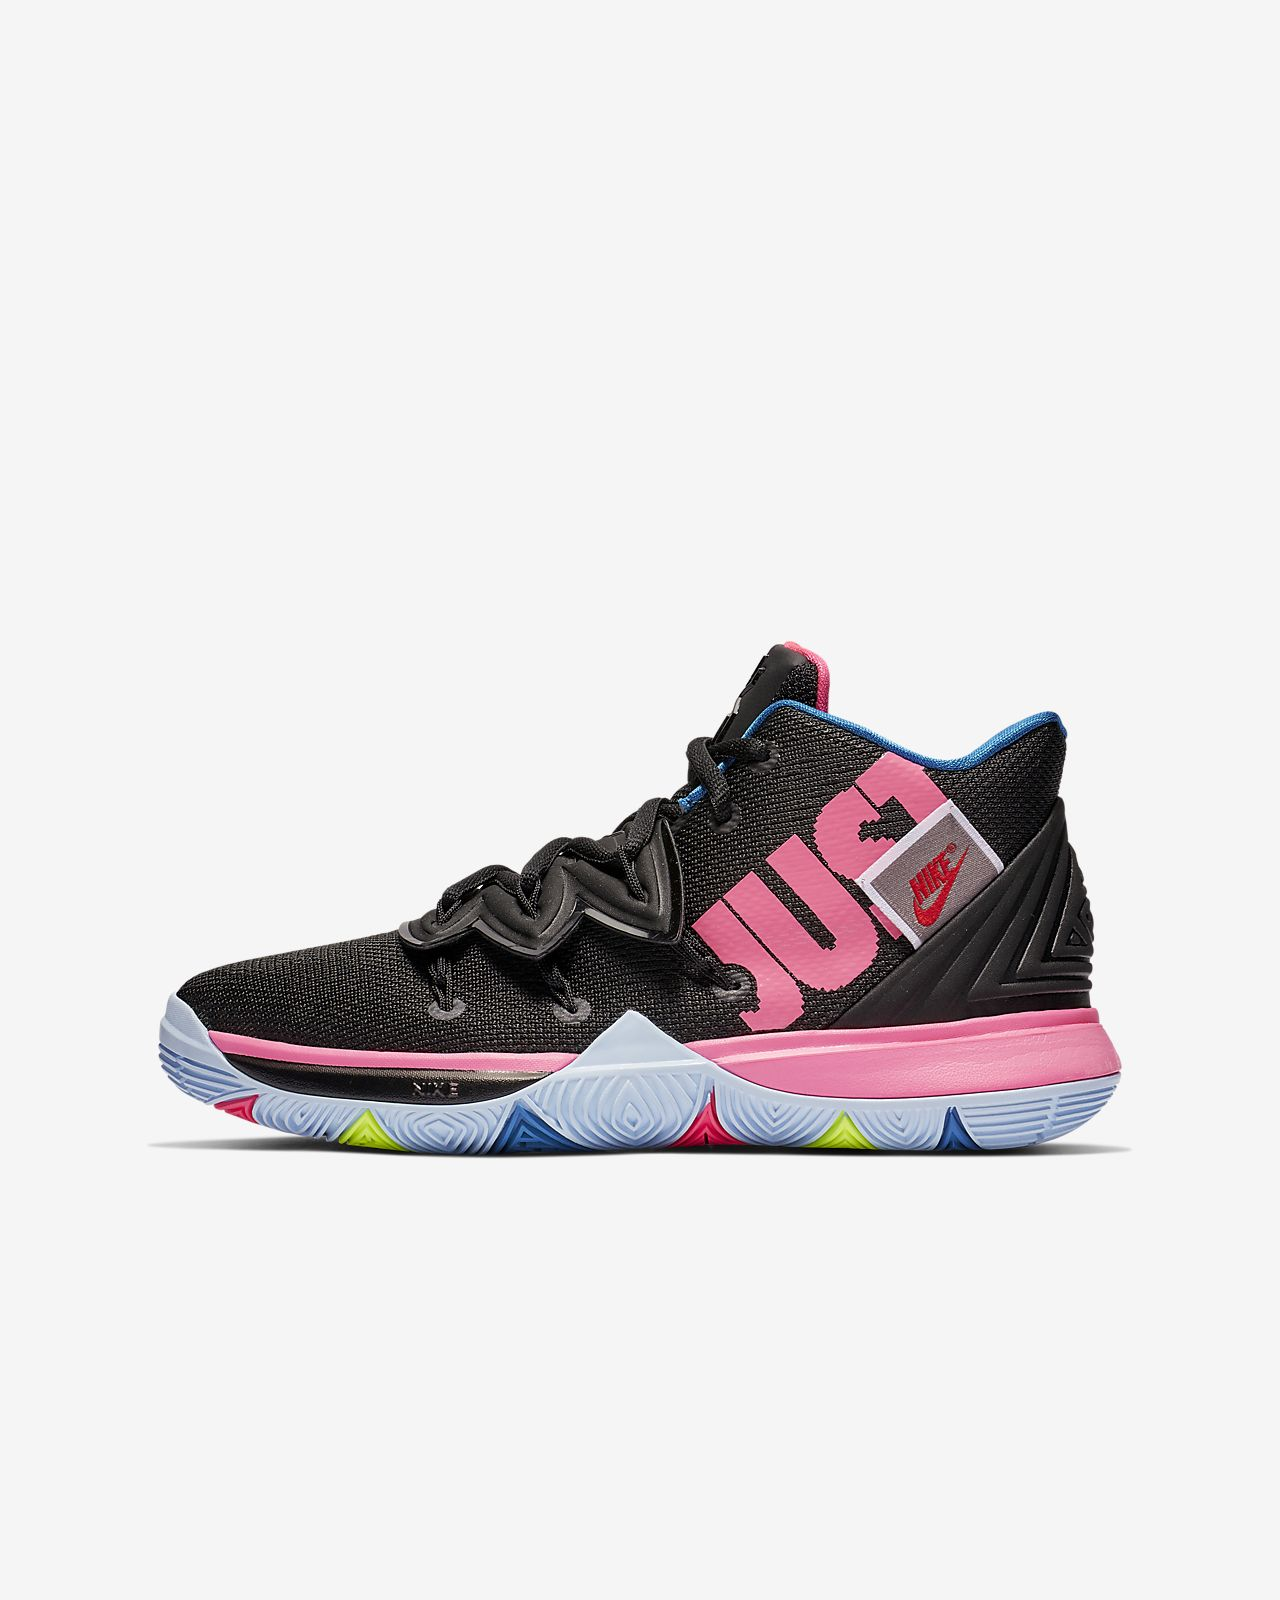 Kyrie 5 Older Kids' Shoe